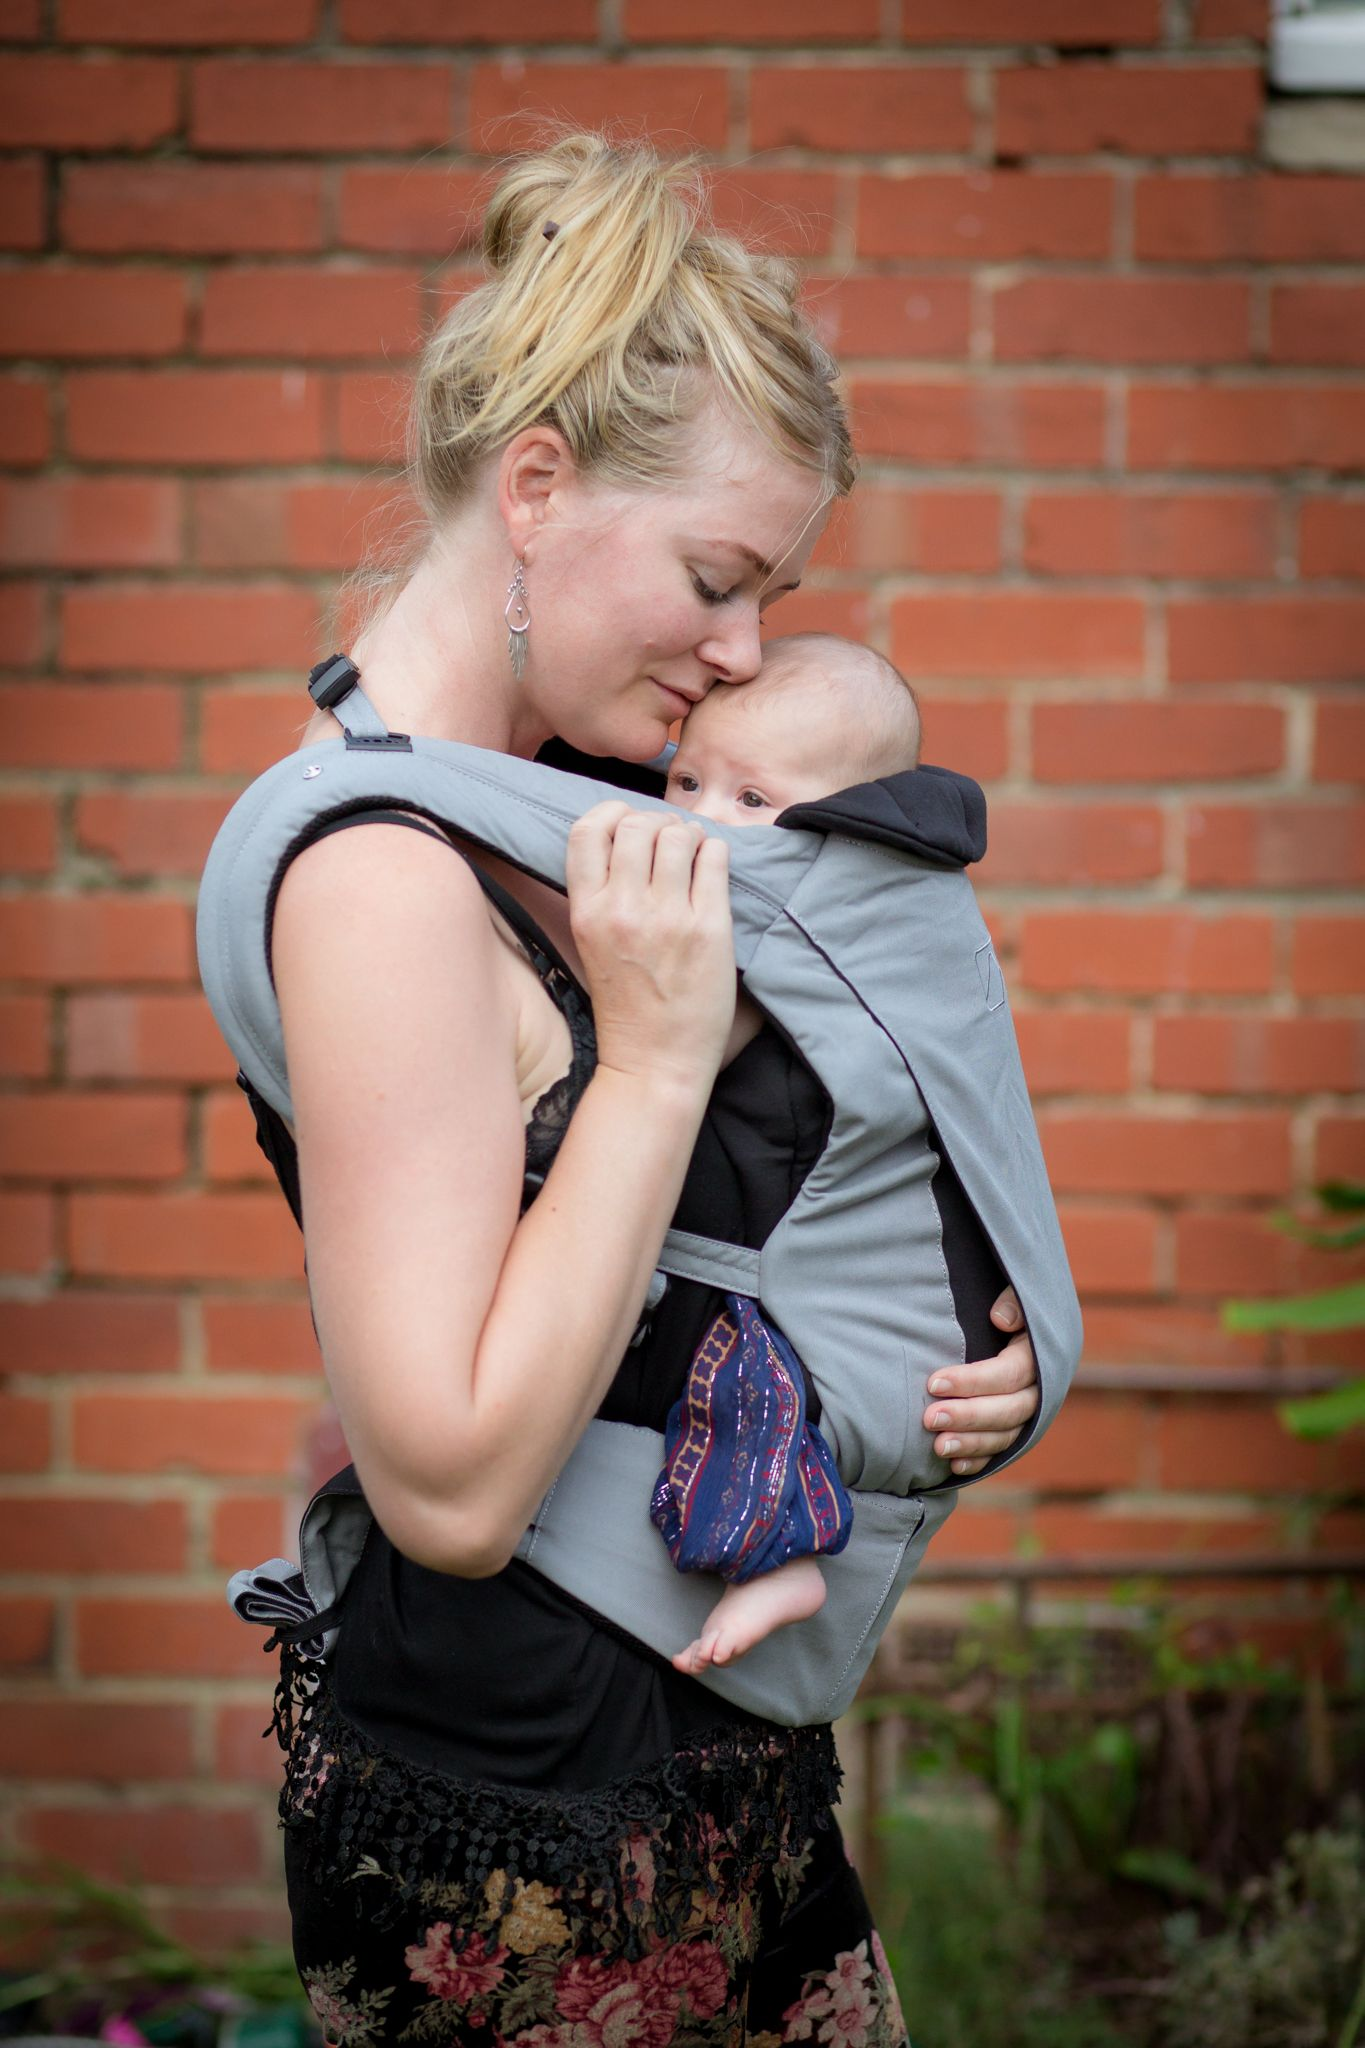 Mountain Buggy Juno Review Mumii The Juno Carrier Offers Hands Free Hands Through Connection And With Four Positions All O Mountain Buggy Buggy Juno